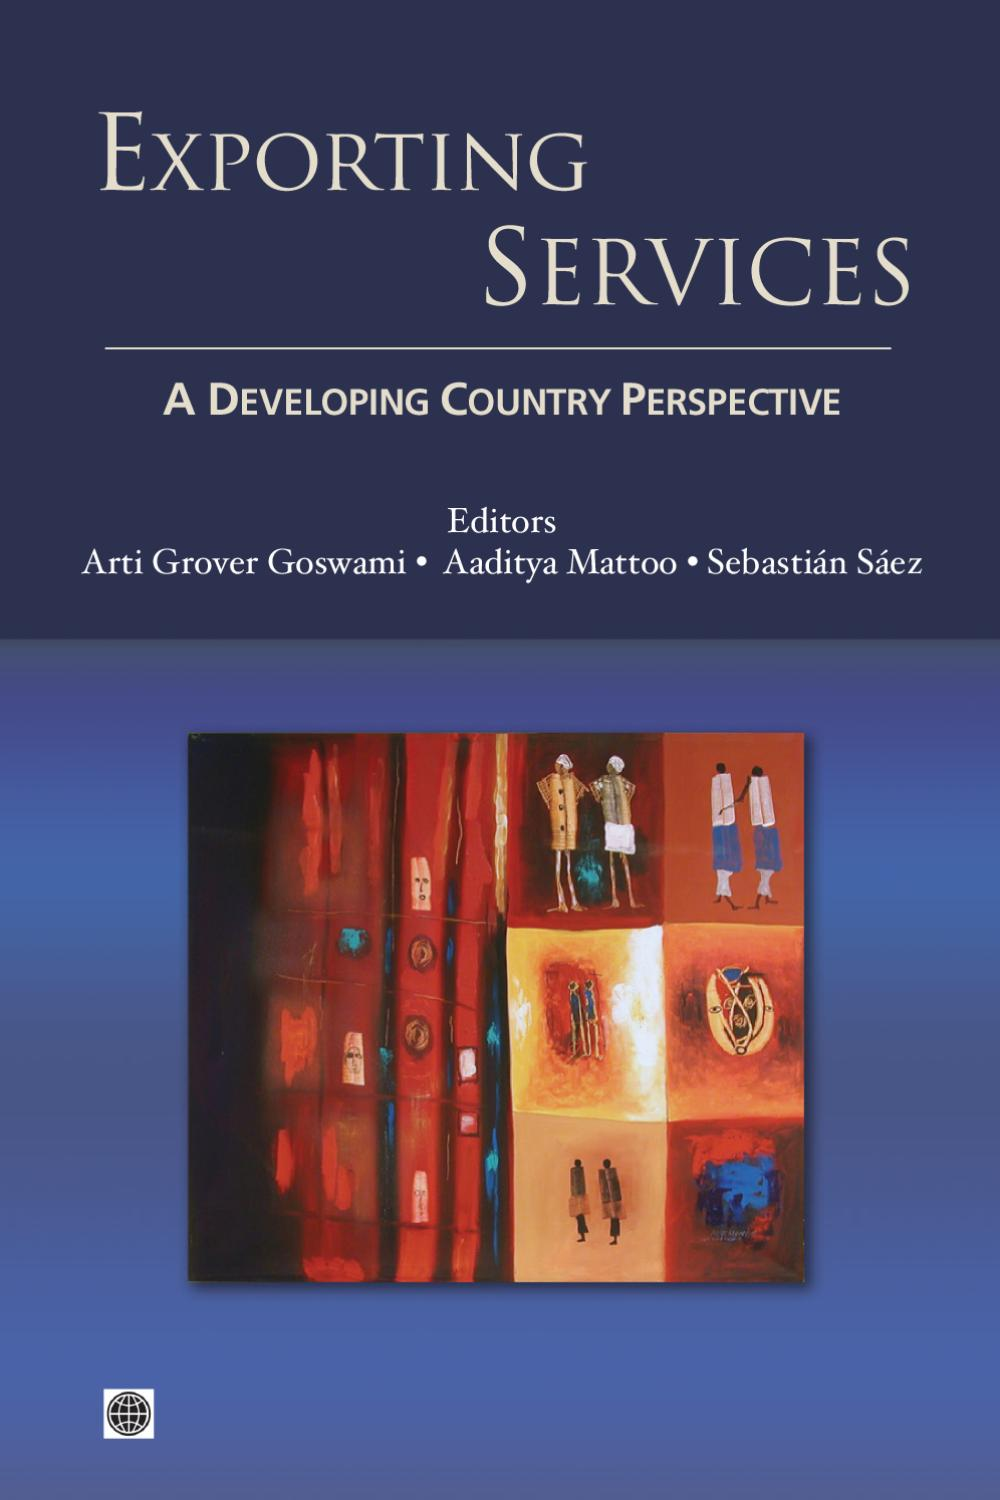 Exporting Services by World Bank Group Publications issuu